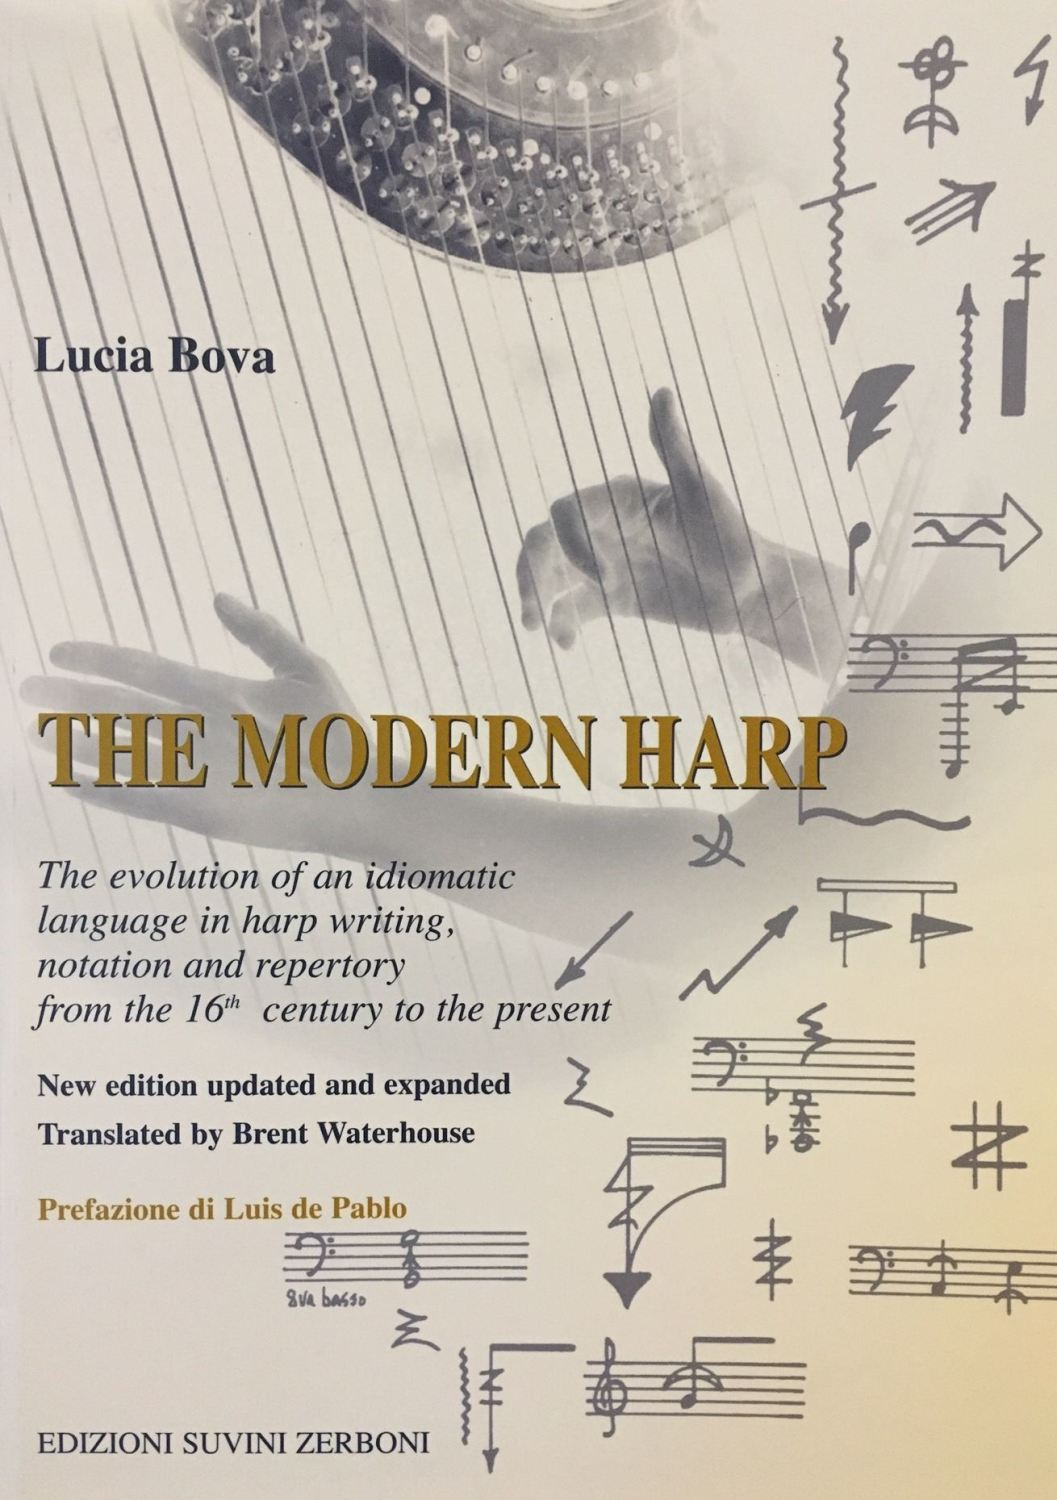 The Modern Harp by Lucia Bova